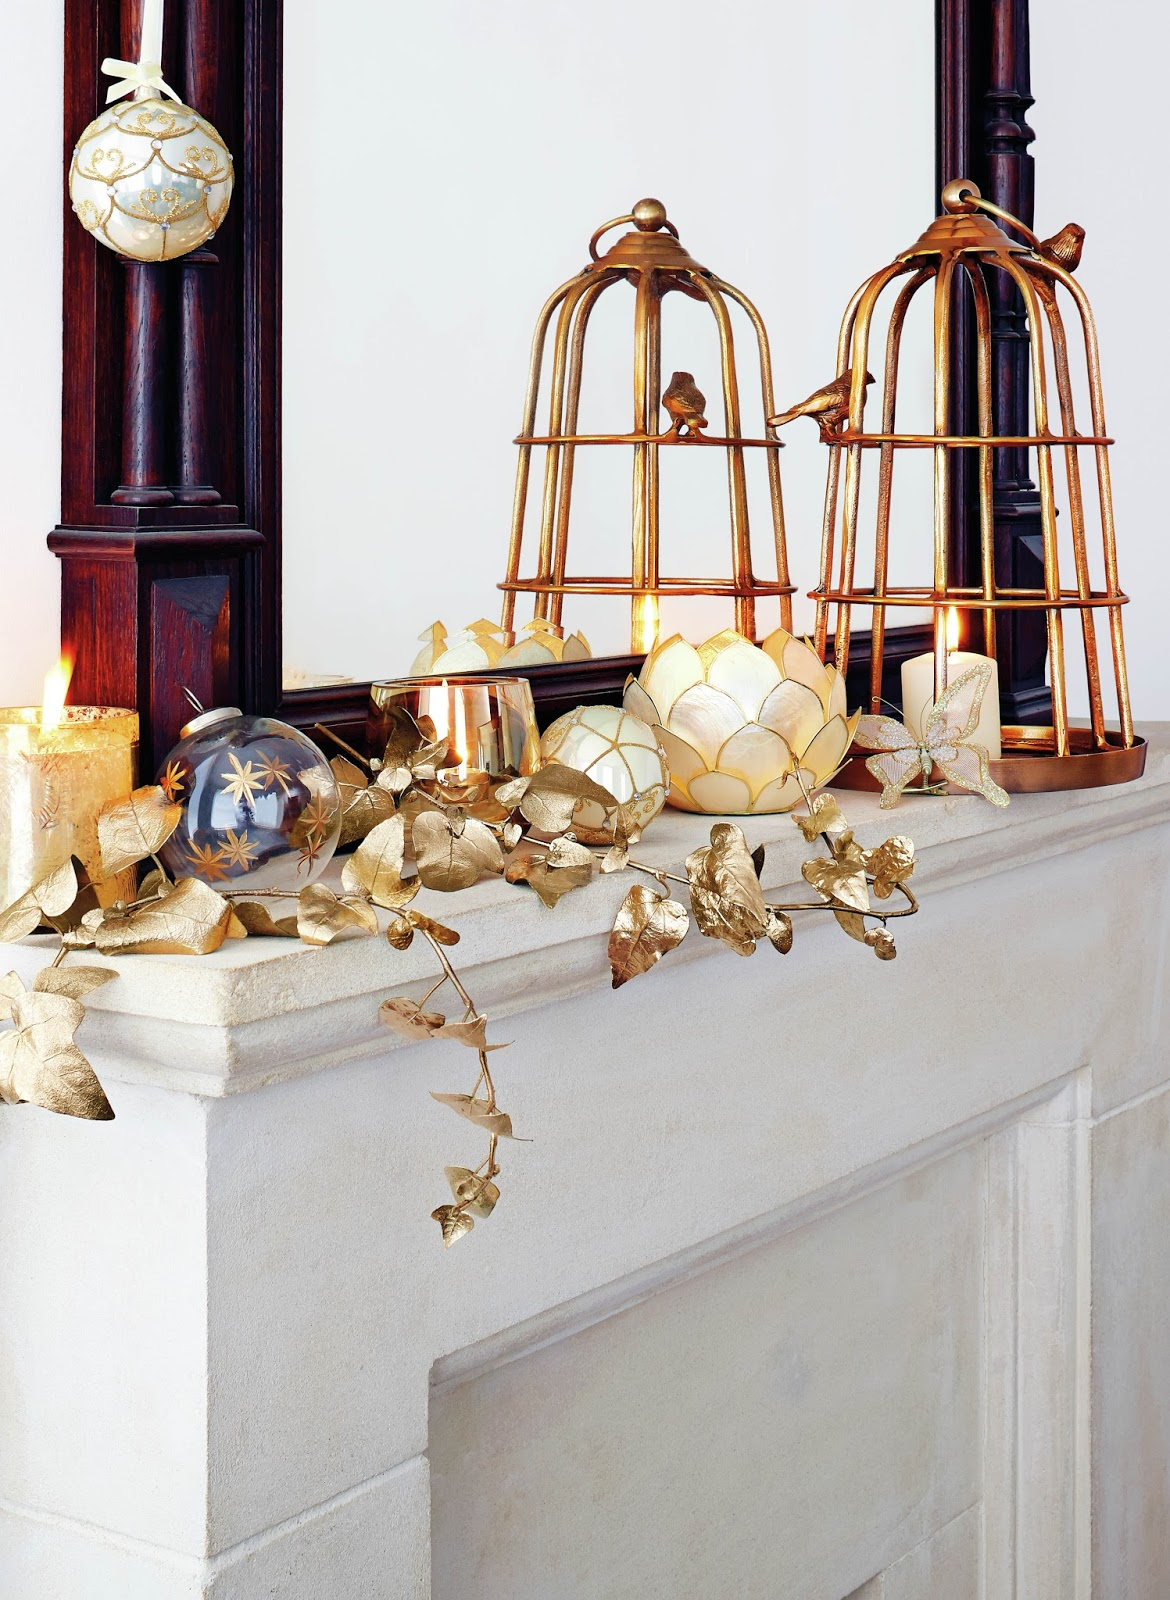 Decorating Ideas > HomeSense Home Decor Plus Hang A Bauble For The Prince's  ~ 063906_Homesense Christmas Decorations